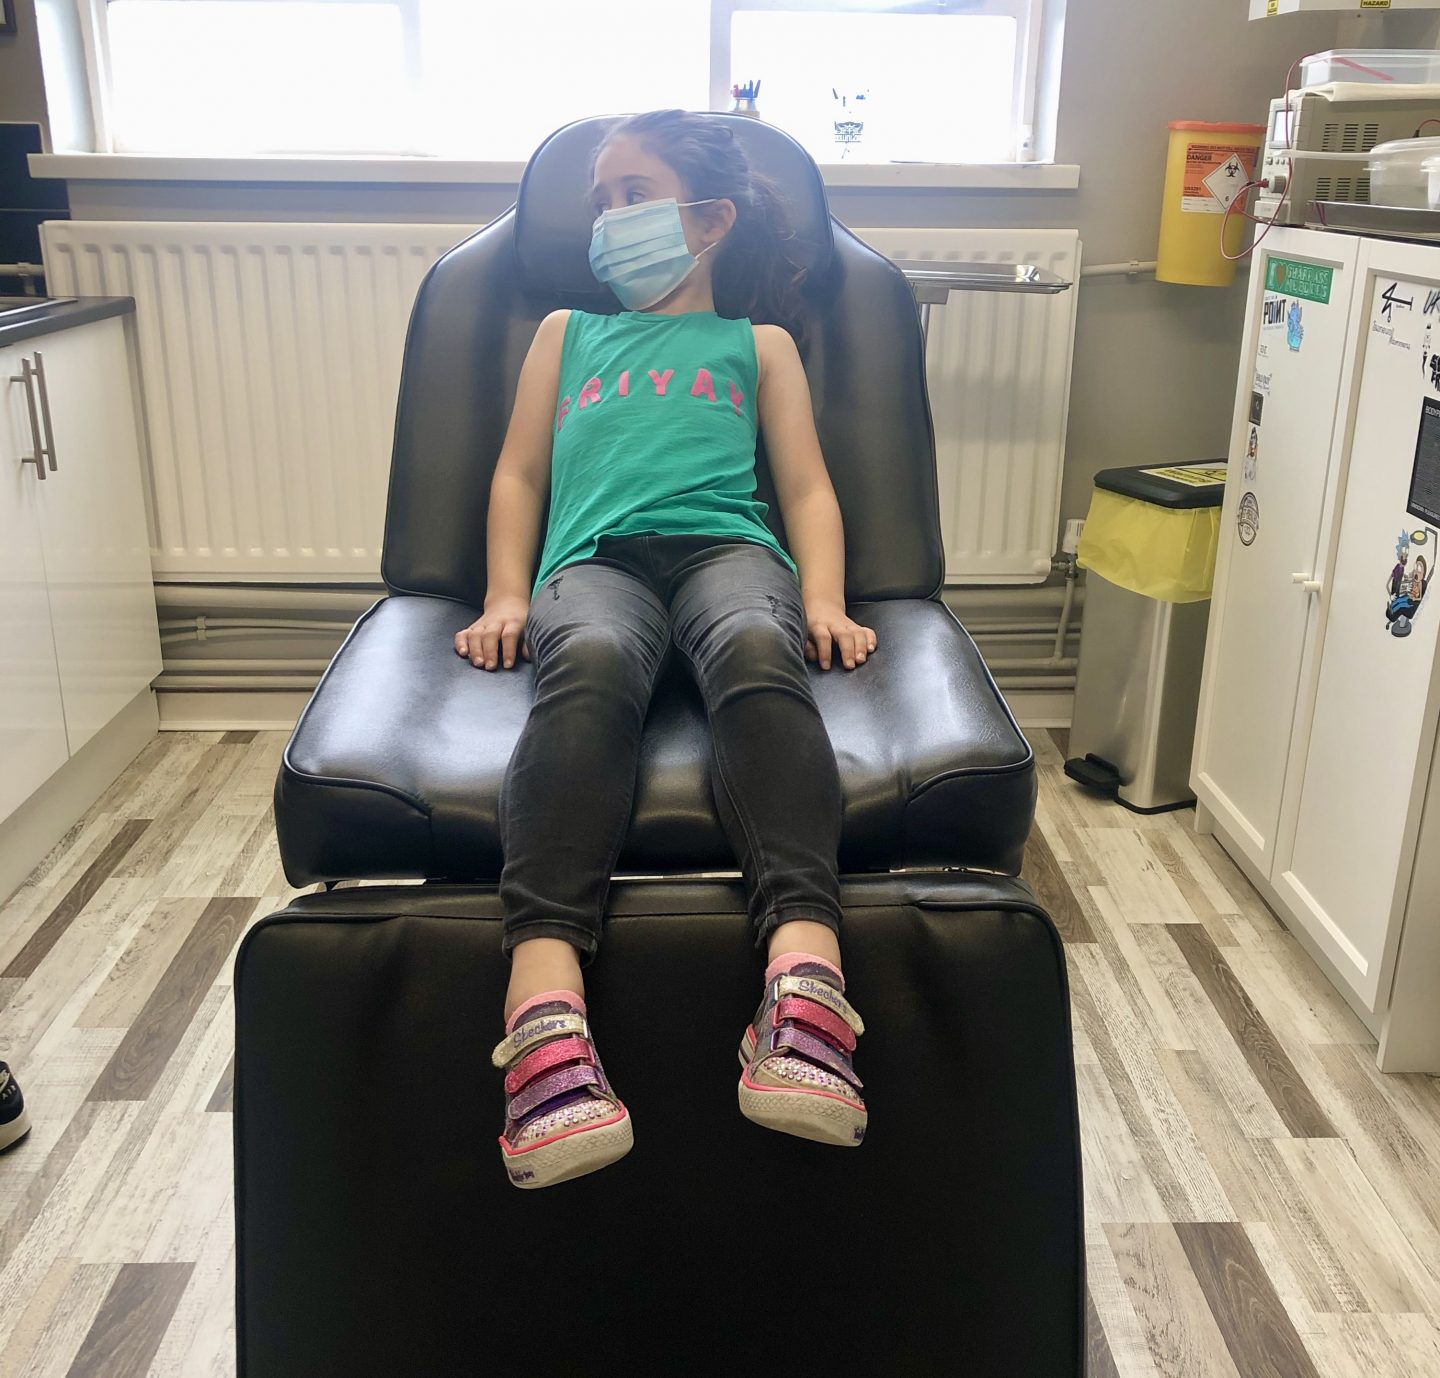 girl in chair waiting for kids ears pierced with a needle